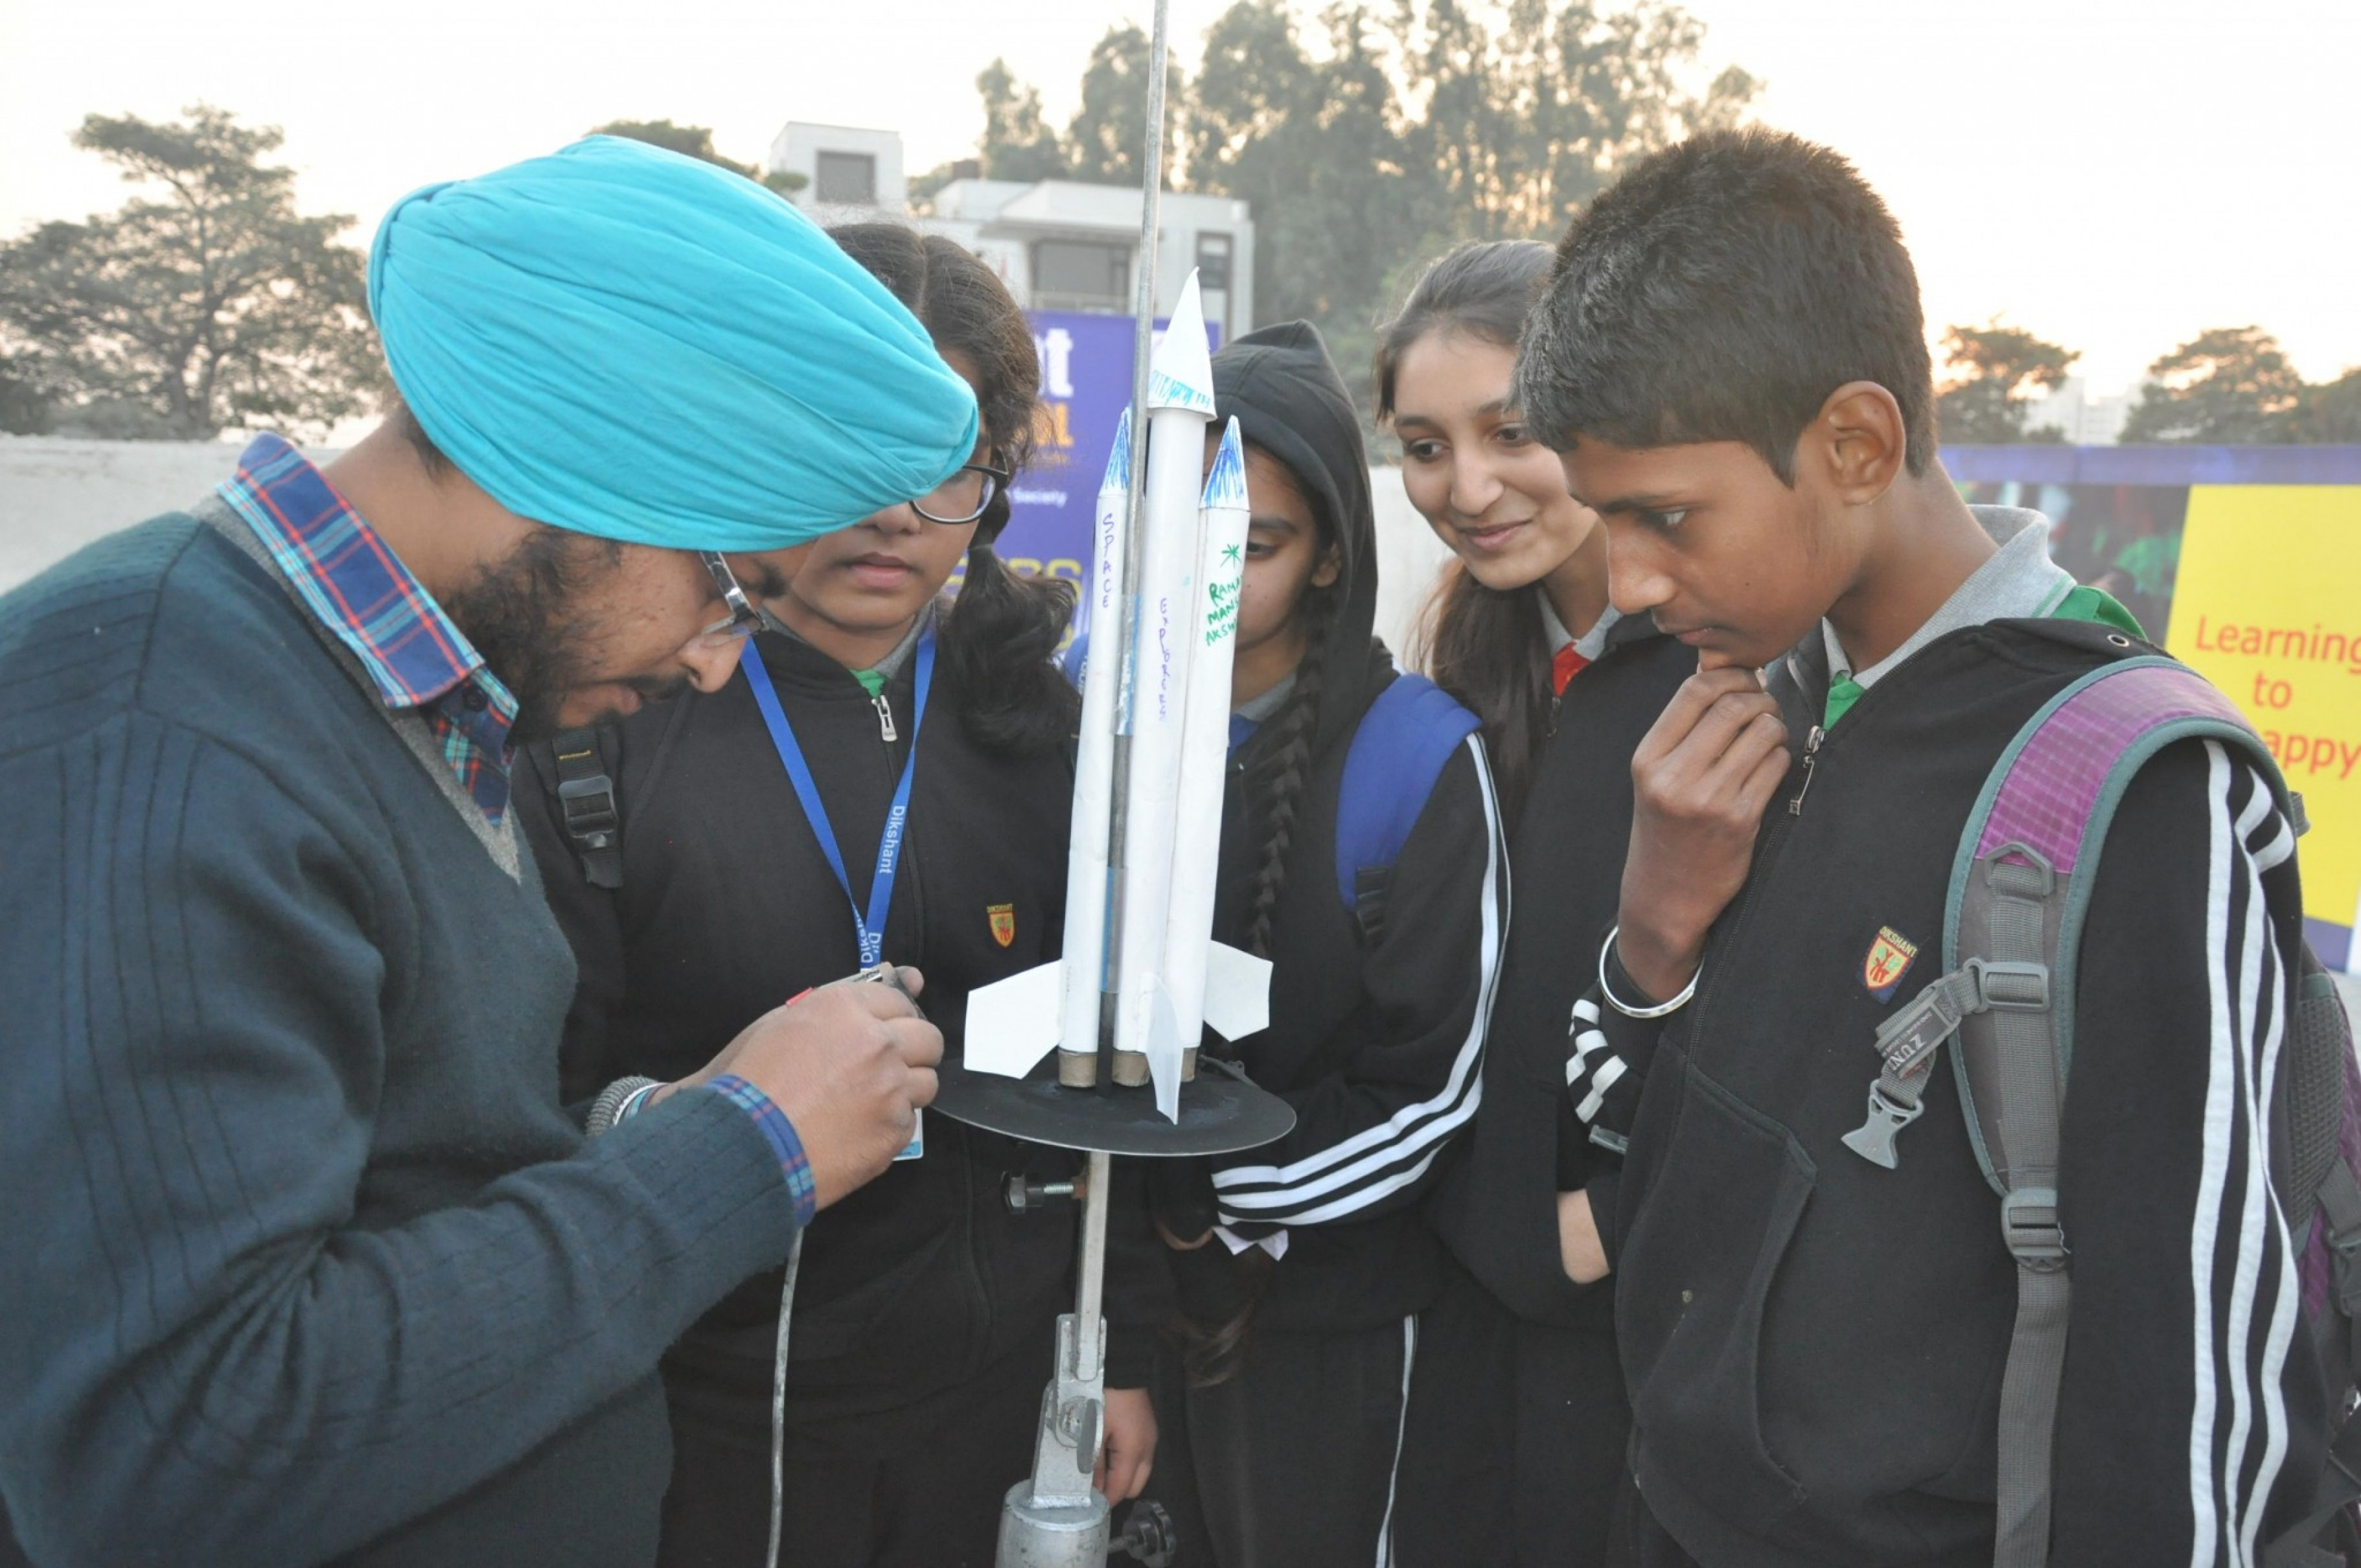 The Model Rocketry festival at Dikshant Global School, VIP Road, Zirakpur, was held on 18th – 19th December, 2015 with as many as 100 students from 10 top schools of tricity; designing, building, testing their Rockets for stability & finally flying their own Rocket models. The International Space Society (ISS) […]